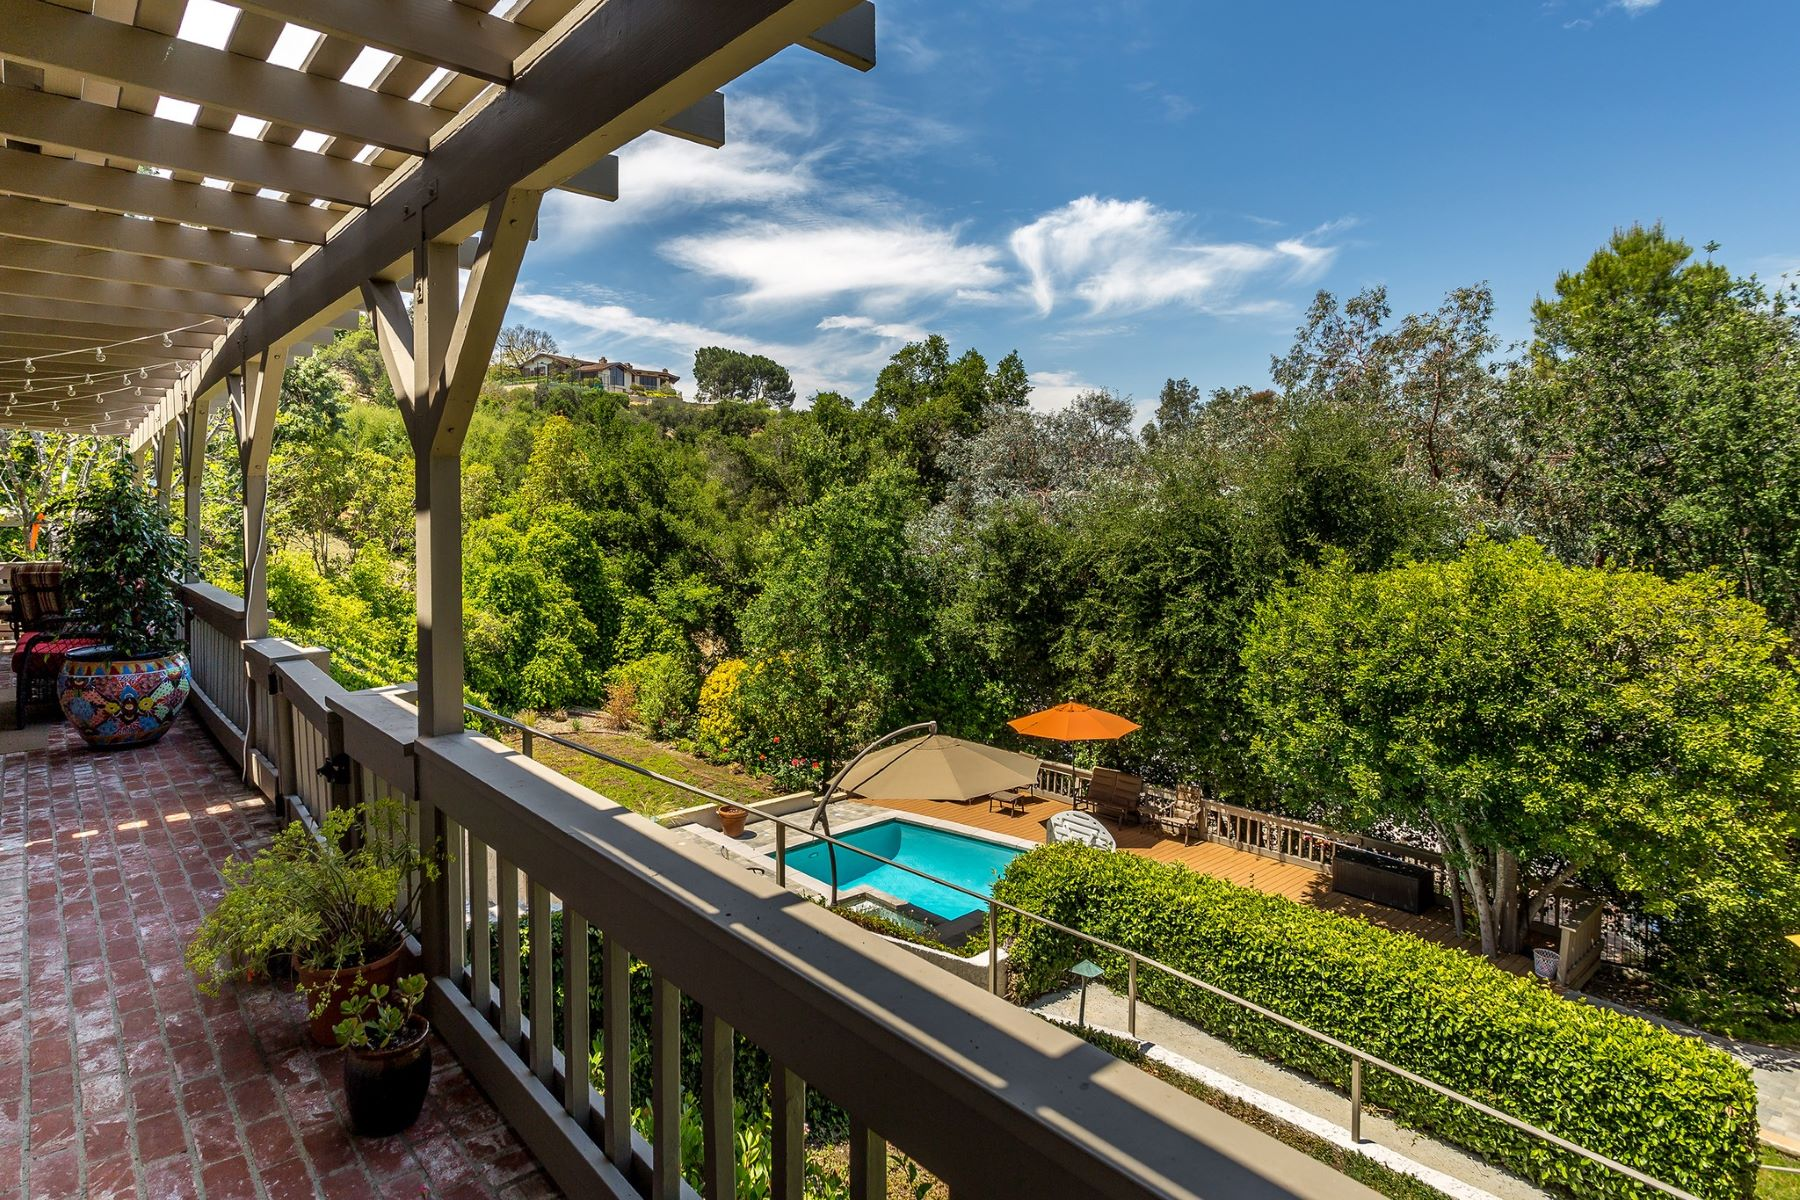 Single Family Homes for Sale at 4219 Hunt Club Lane Westlake Village, California 91361 United States